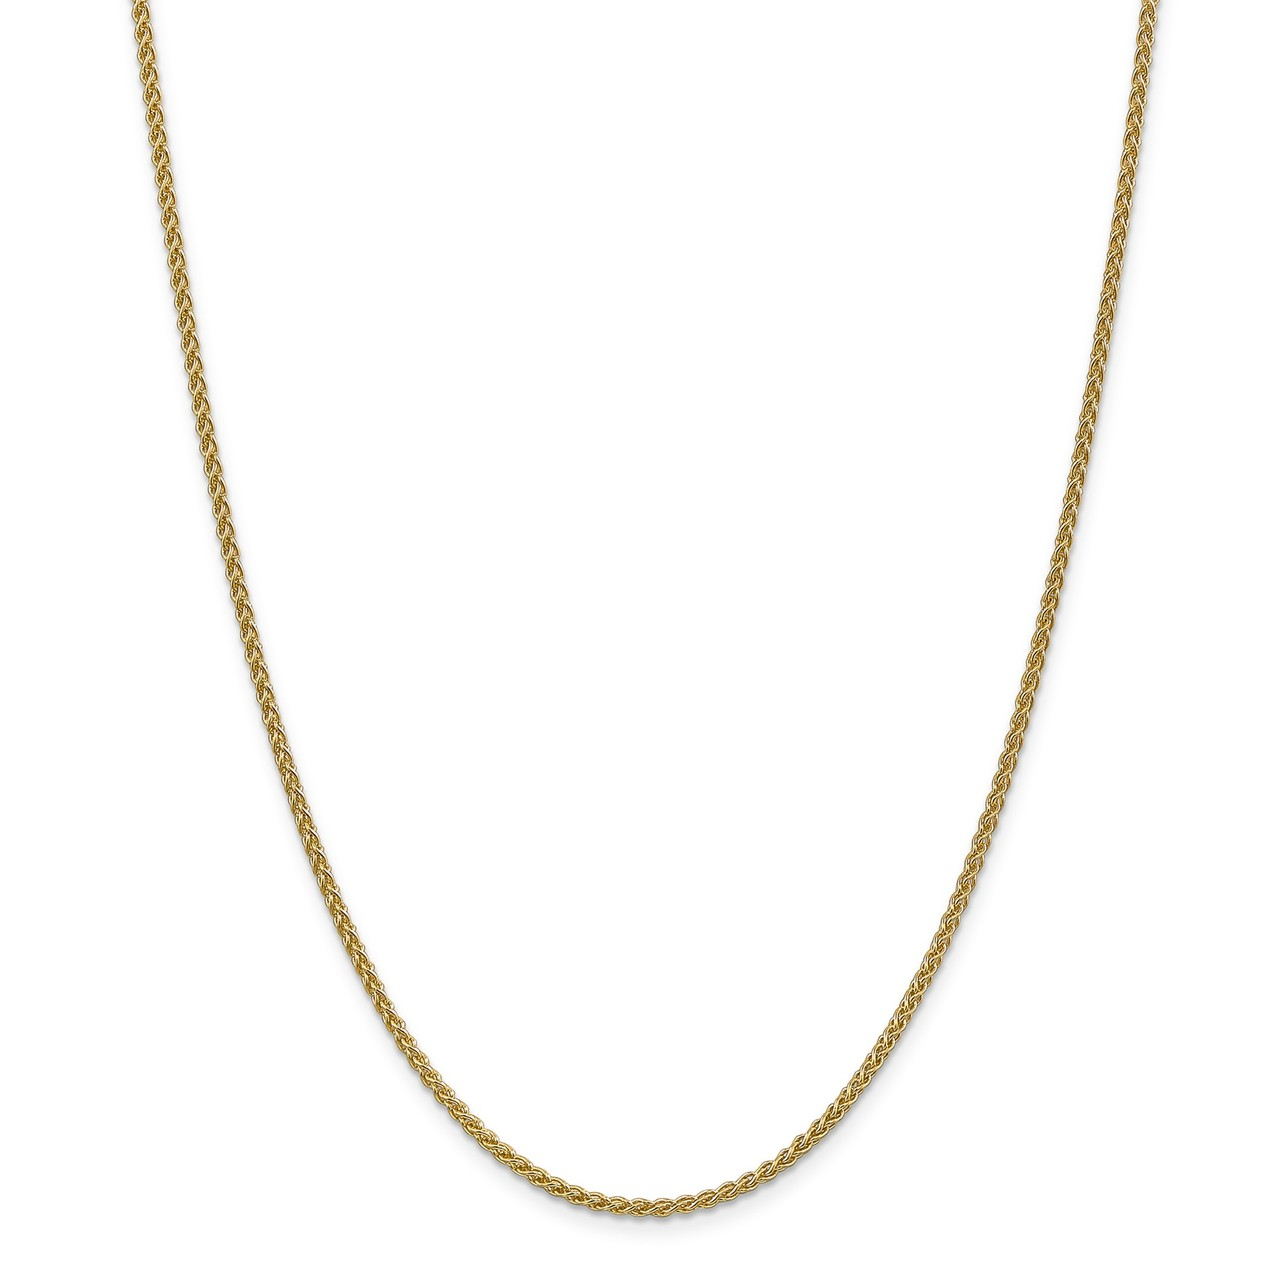 Lex & Lu 14k Yellow Gold 2.00mm Spiga Chain Necklace or Bracelet by